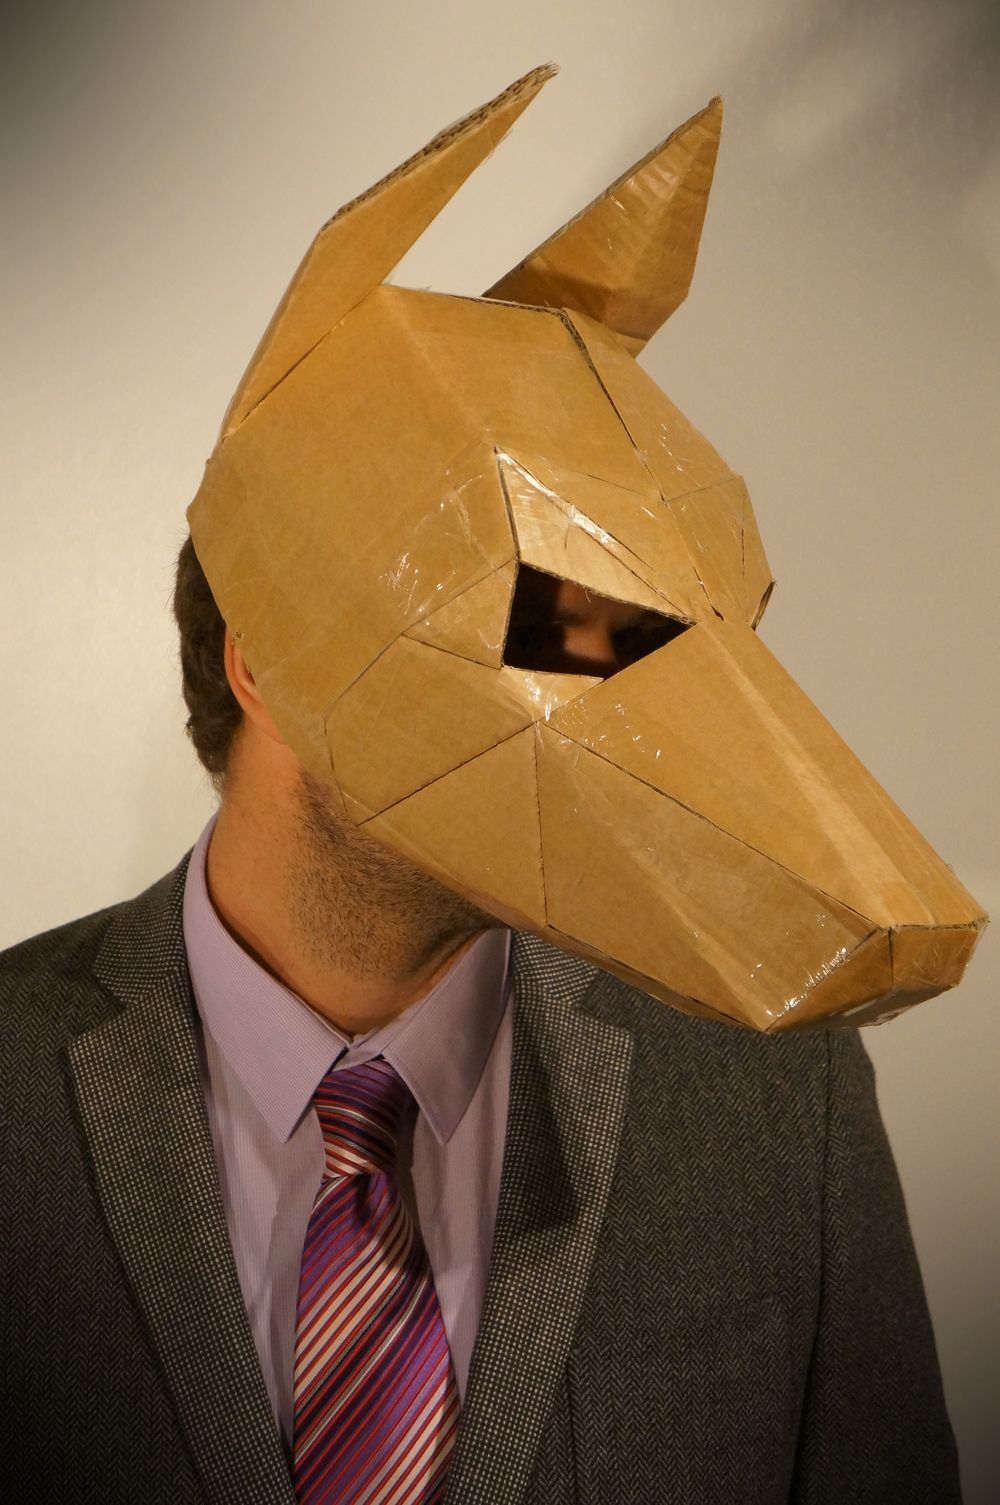 How To Make A Dog Mask Out Of Paper: Stuck For A Fancy Dress Costume? Make Your Own Dog Mask